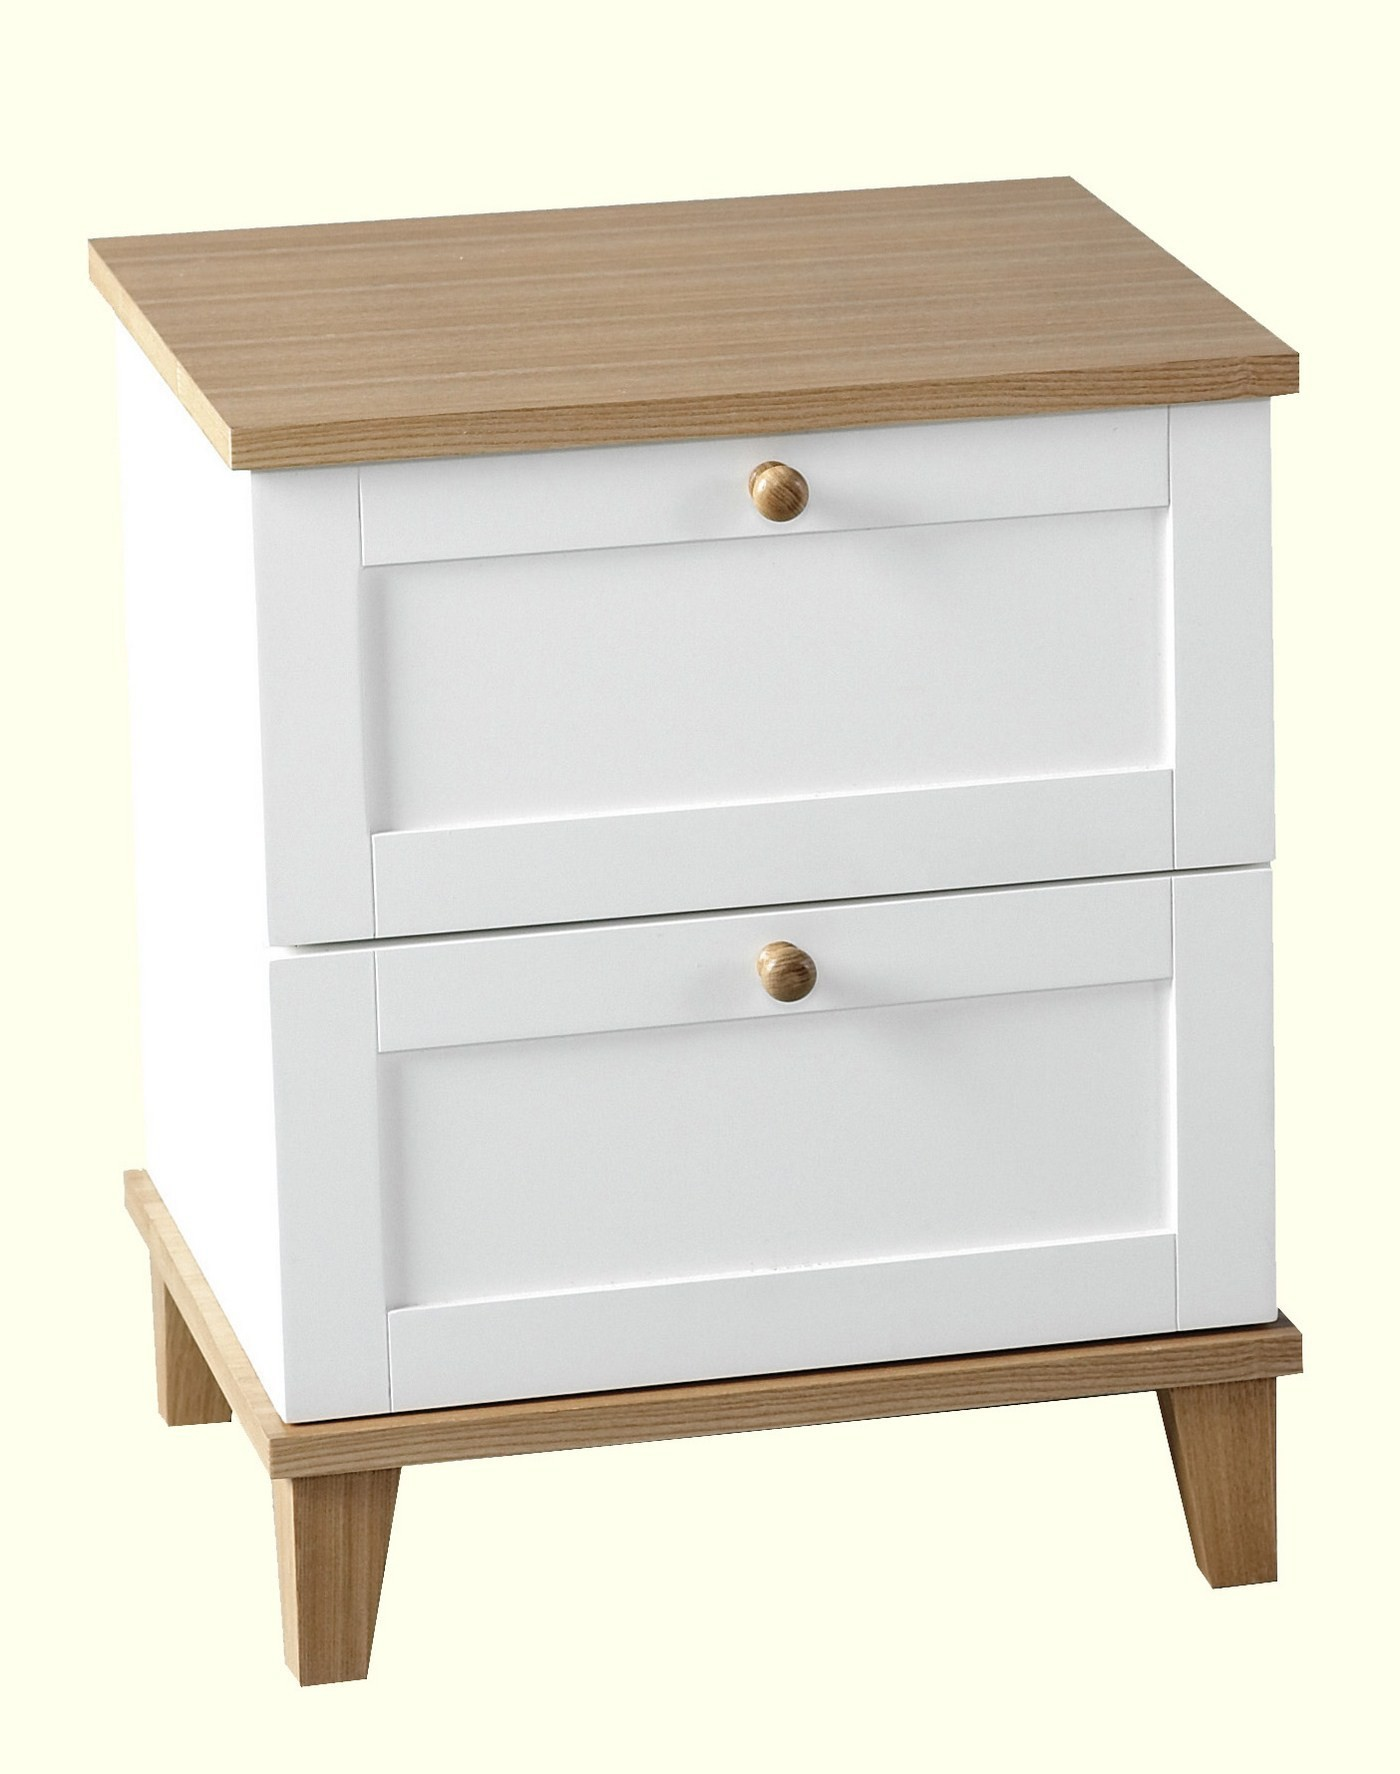 furniture dazzling nightstands design for bedroom wood nightstand ikea unfinished mirrored end tables plans night stands oak grey tall outdoor wicker side table modern glass